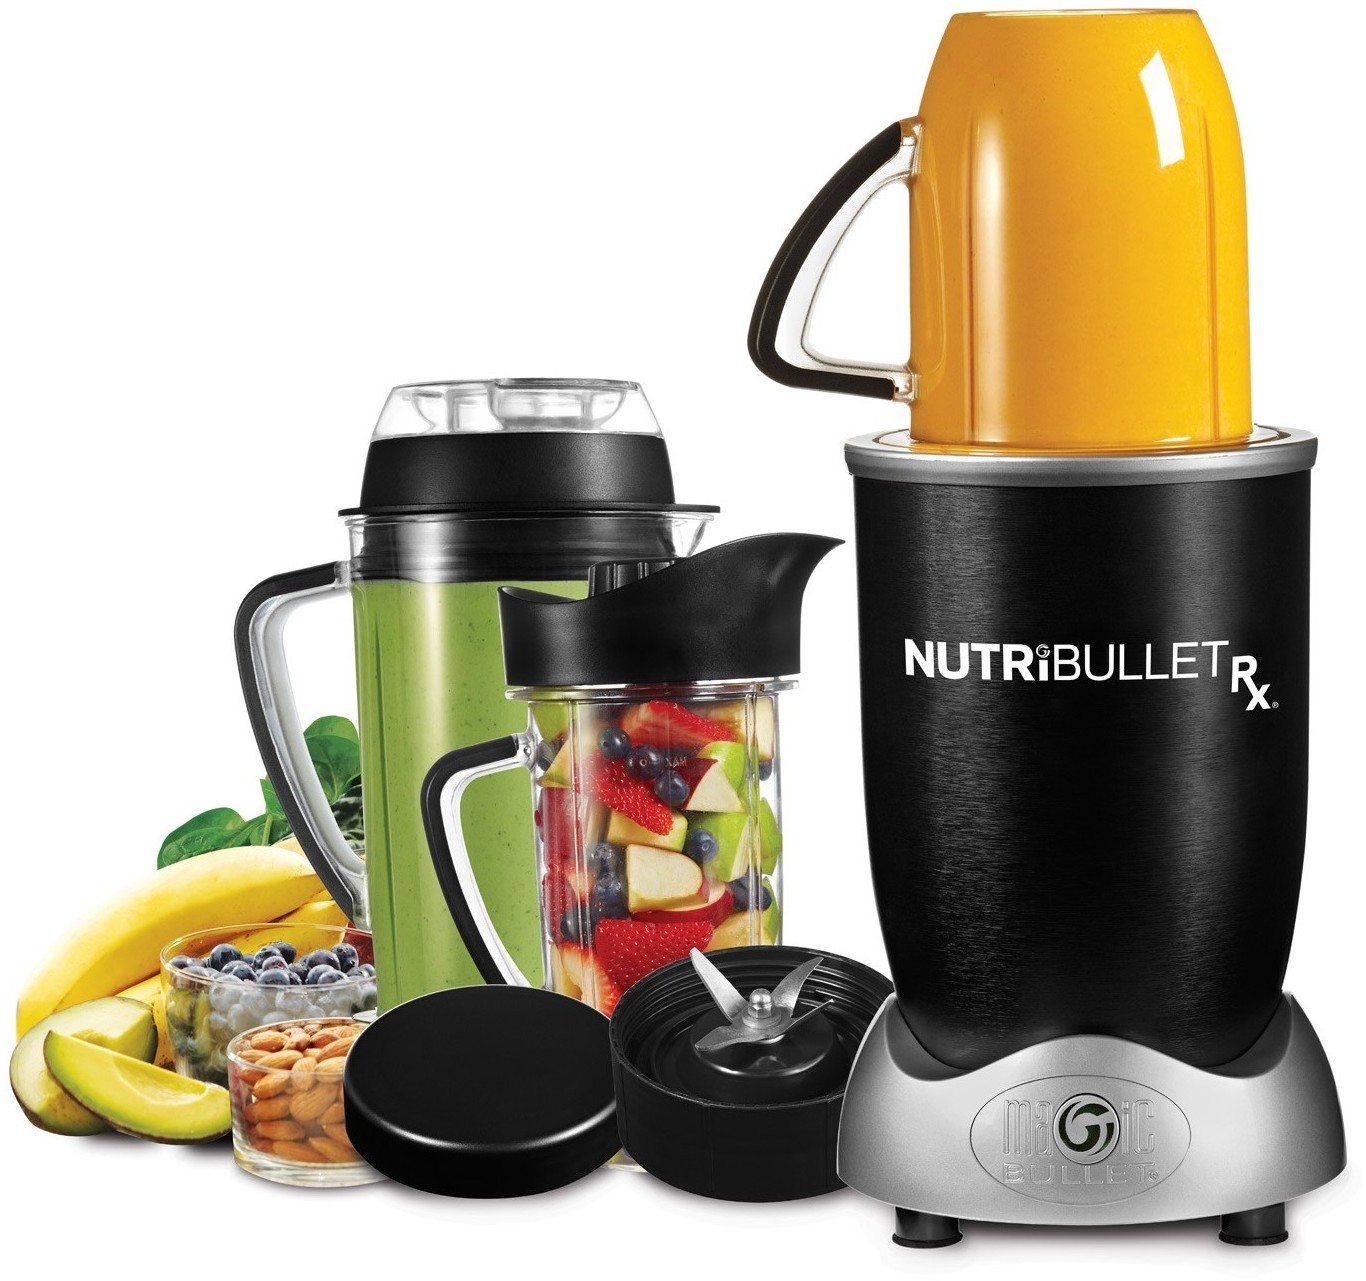 NutriBullet Black Panther 1700/9 RX